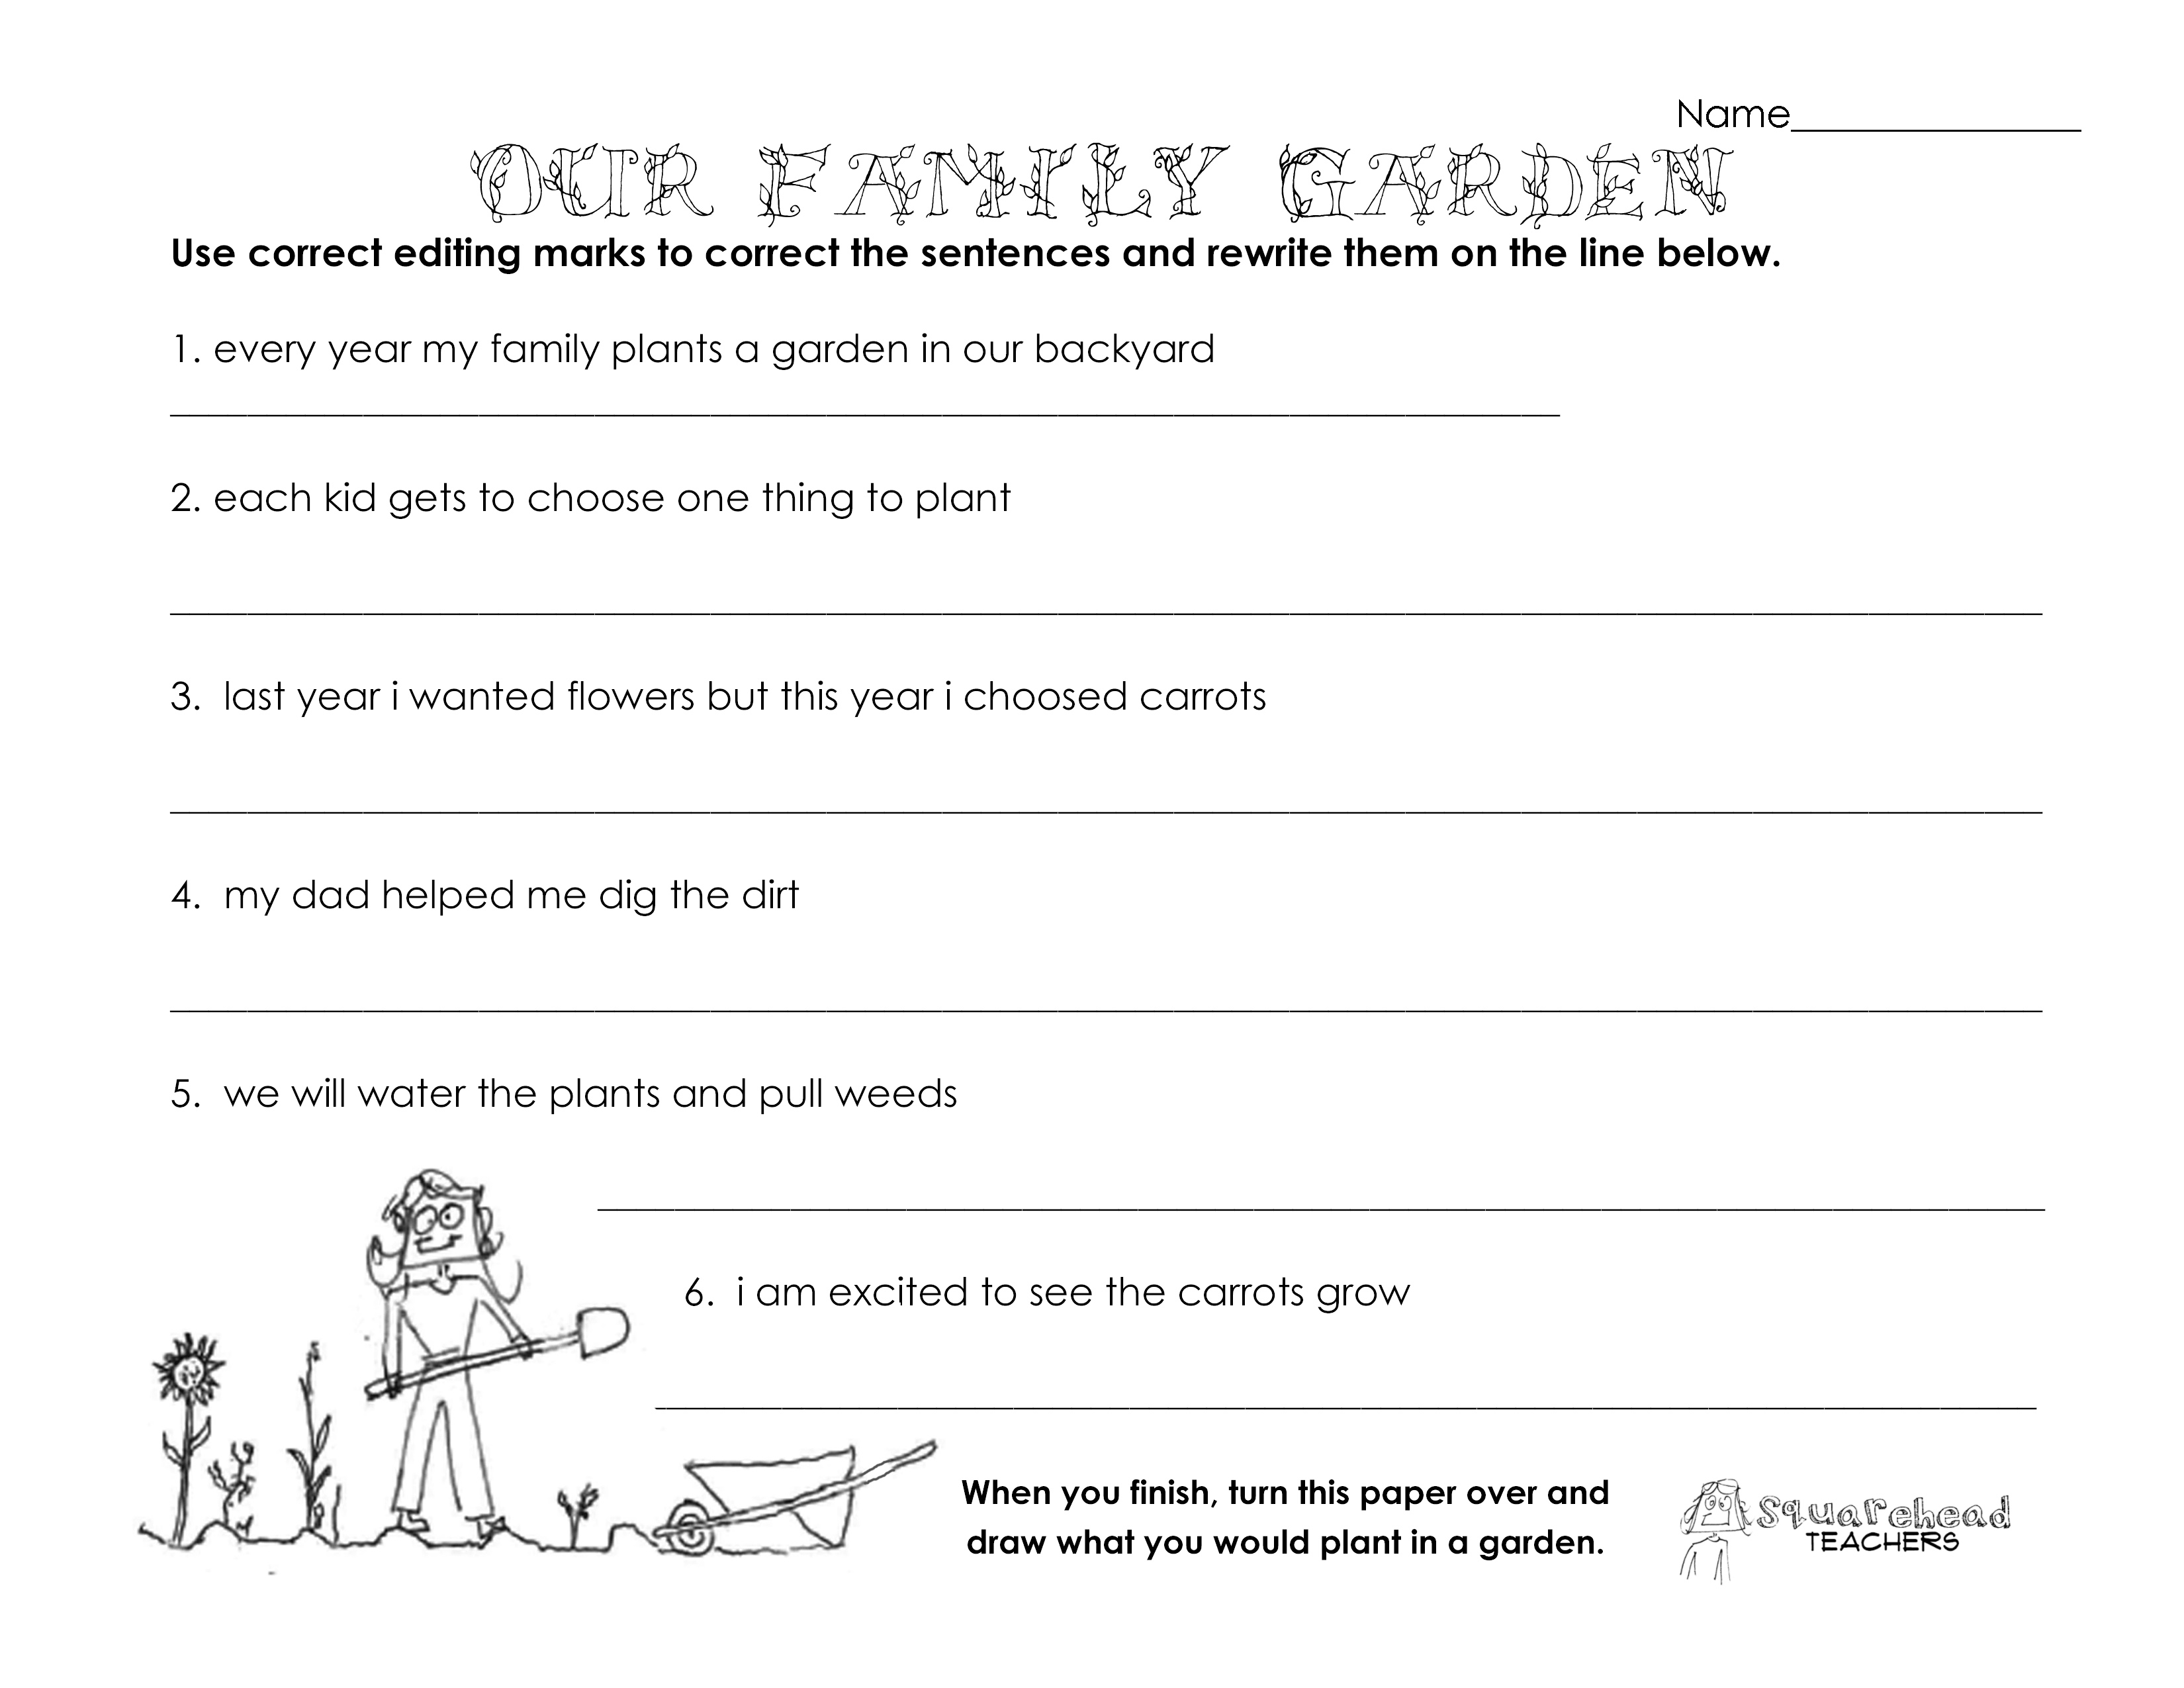 Our Family Garden Grammar Worksheet